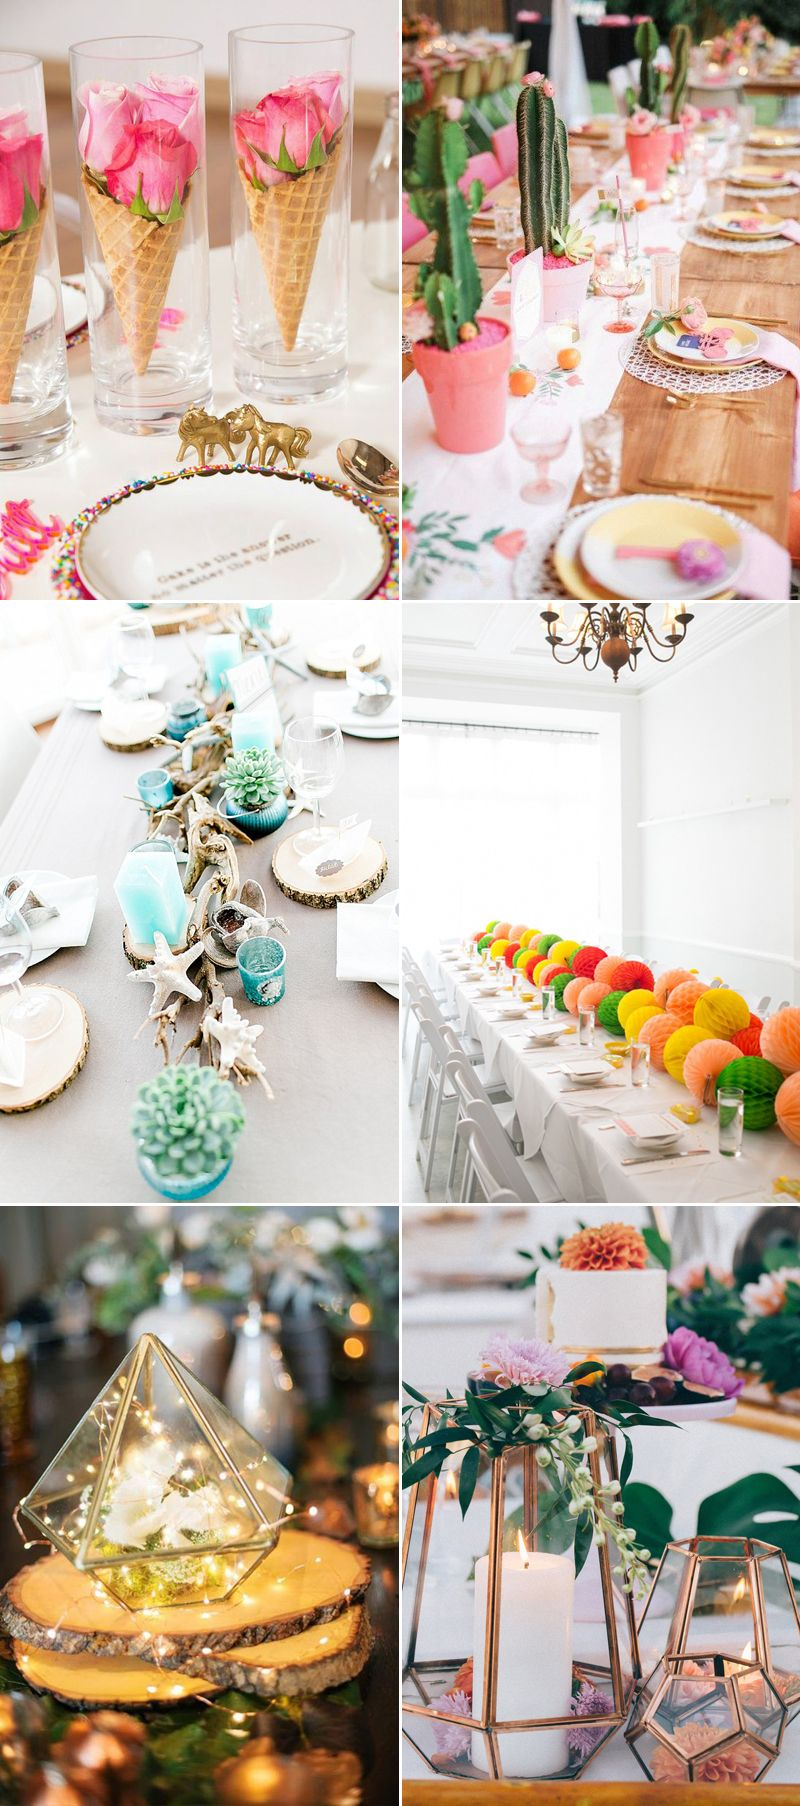 33 Budget-friendly Creative Centerpiece Ideas to Impress Your Guests ...